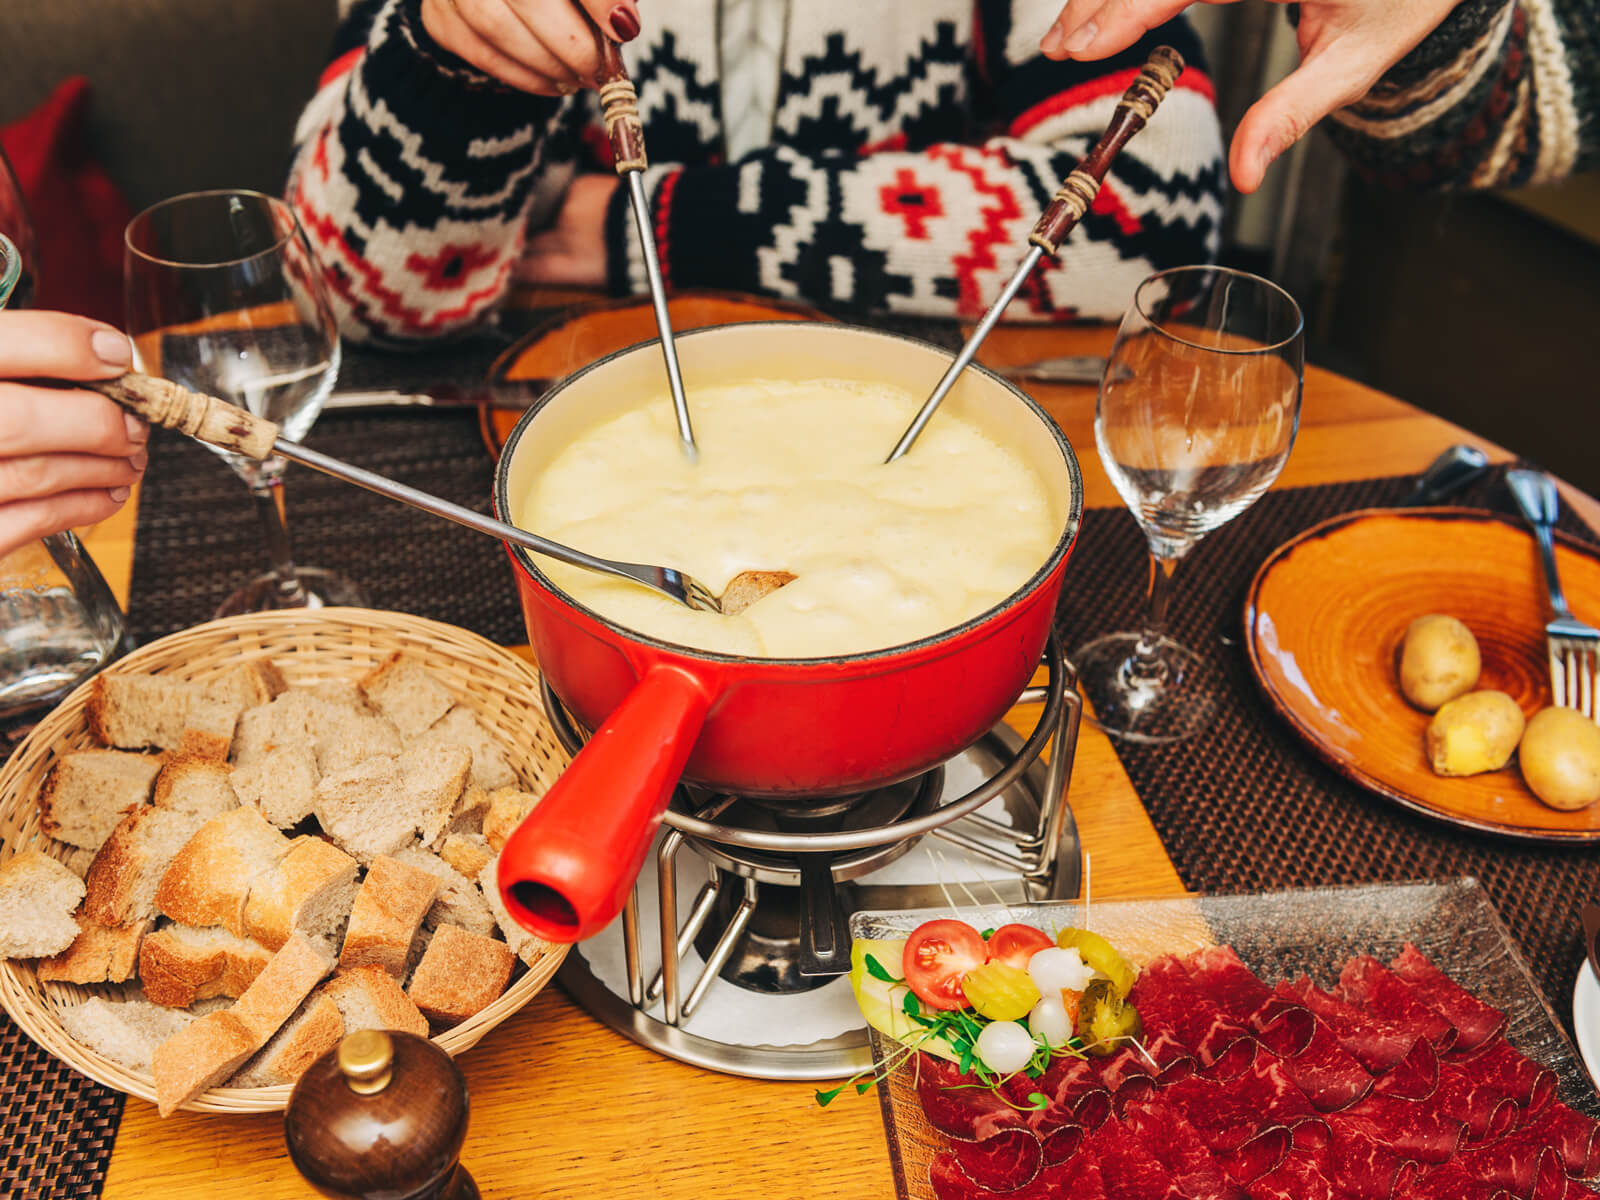 Cheese in Switzerland - A typical Swiss cheese fondue party